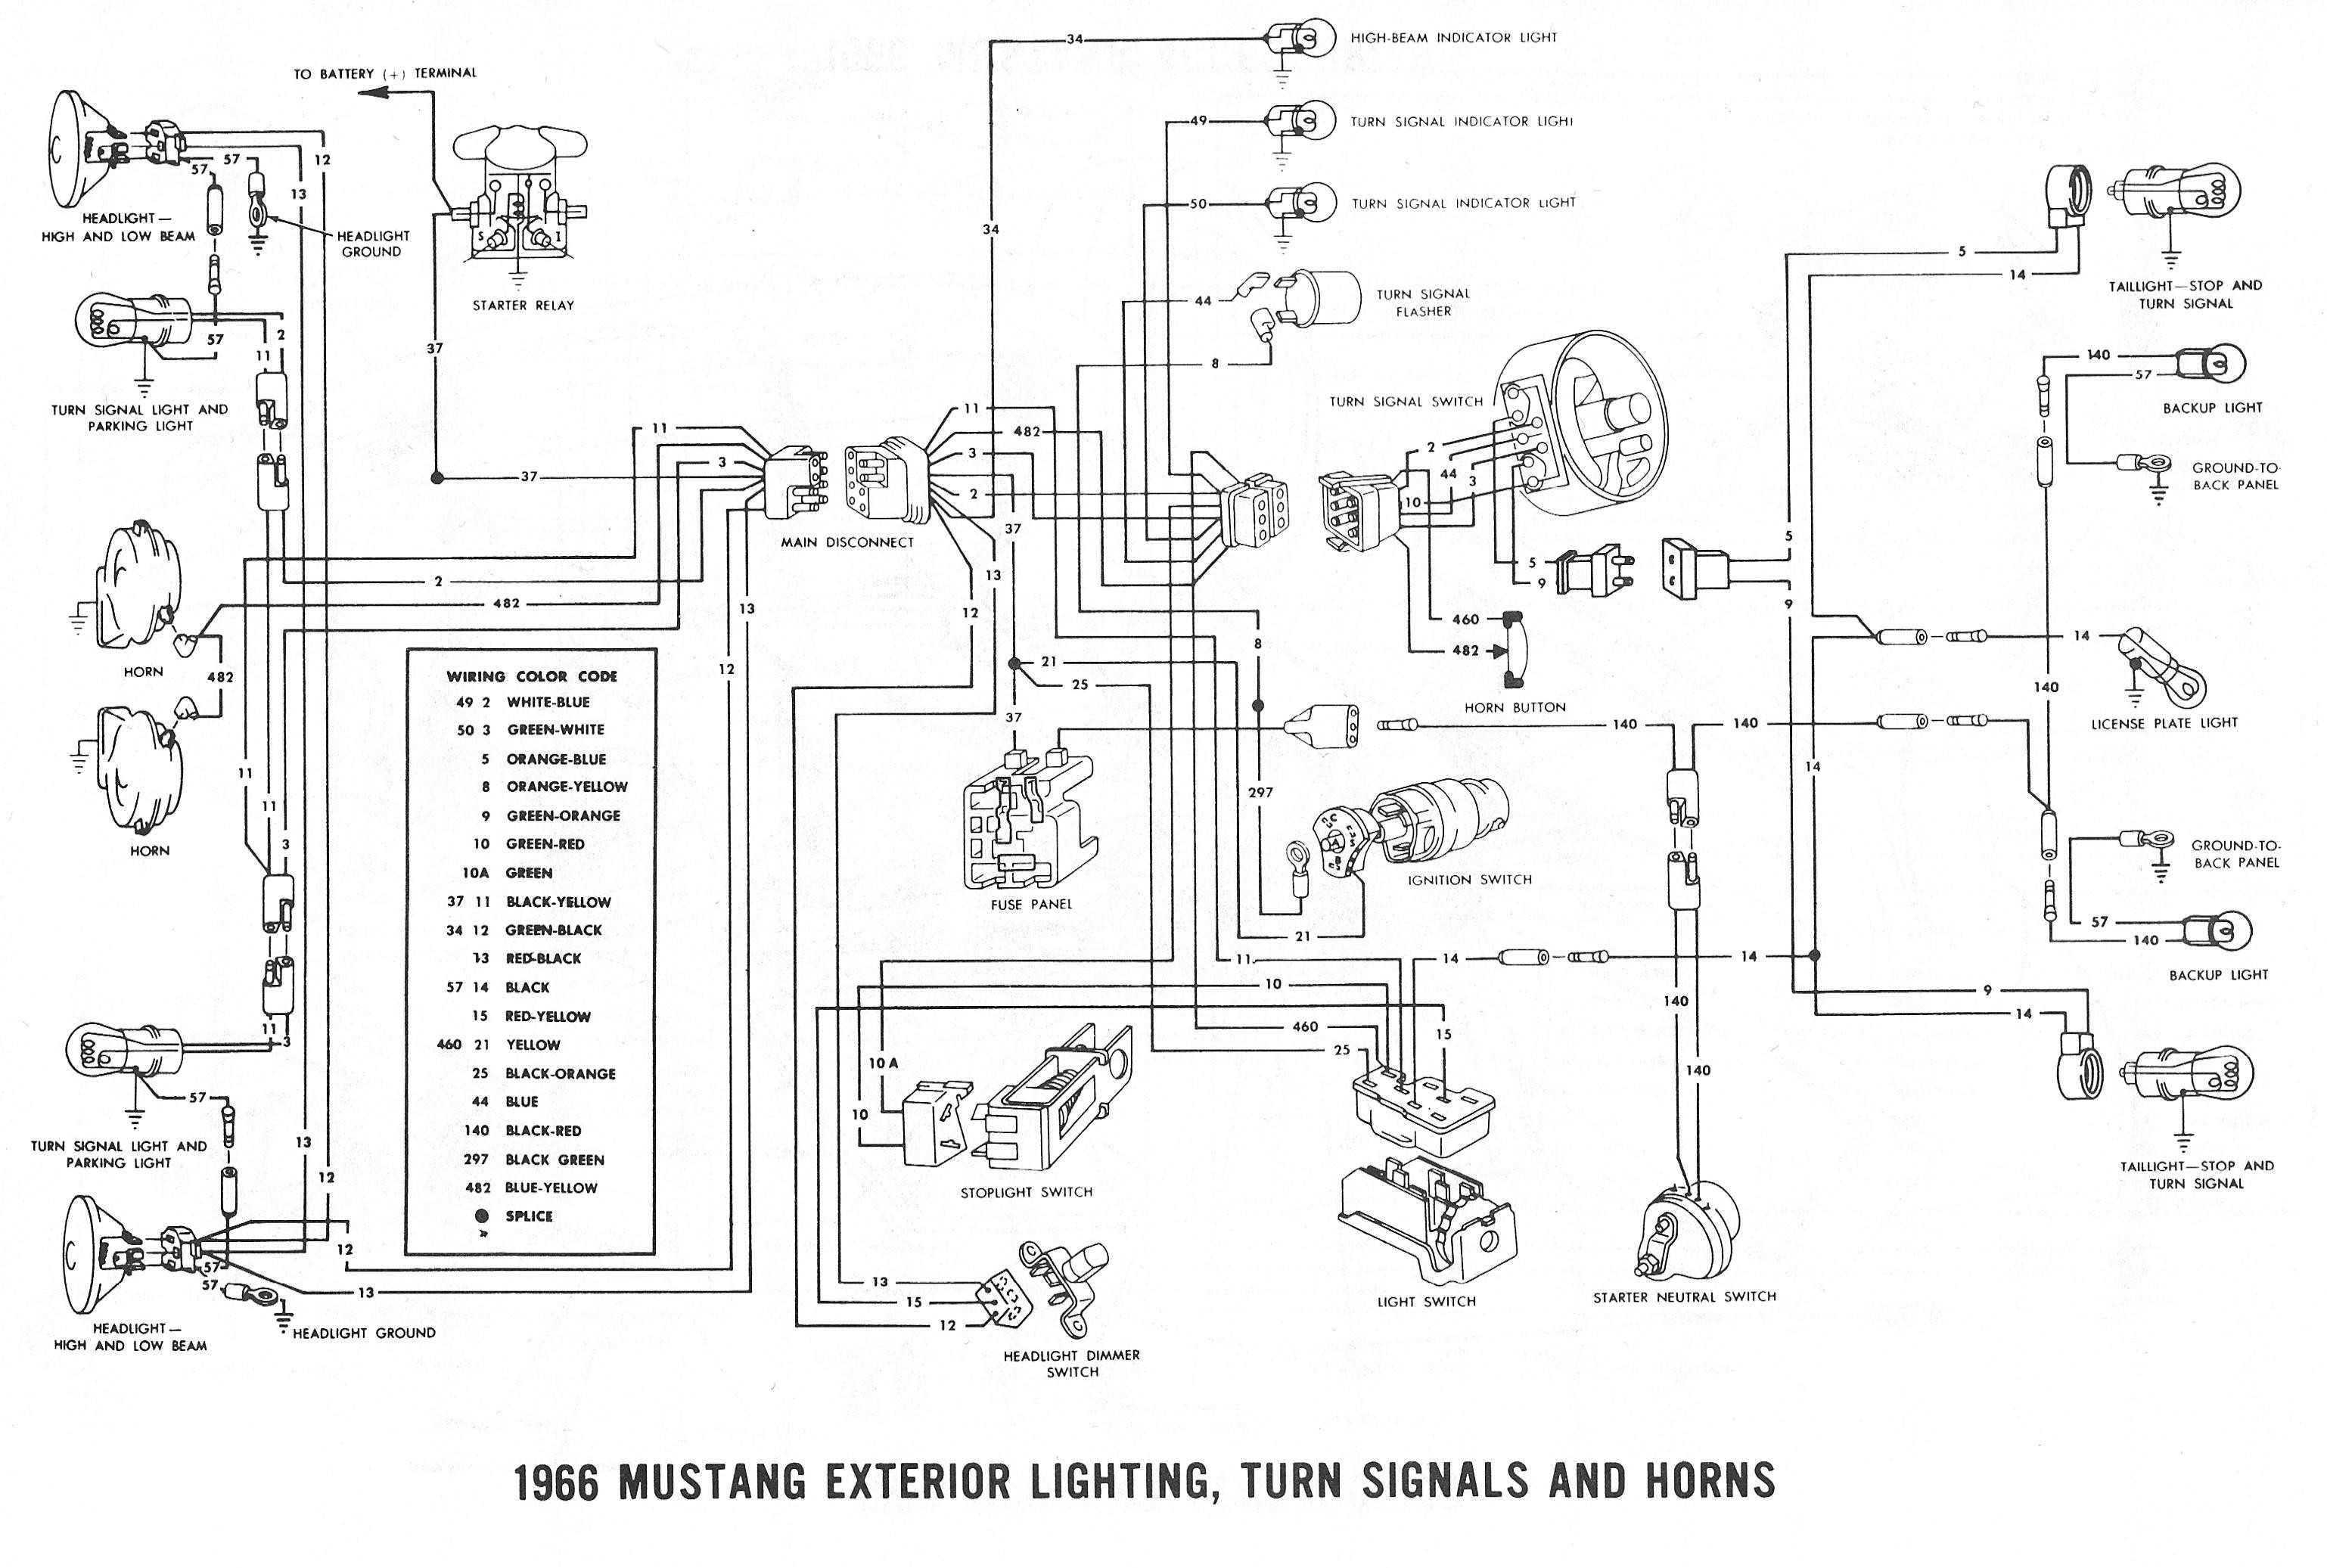 1966 ford mustang horn wiring diagram automotive wiring diagram 1965 mustang wiring diagram my wiring diagram rh detoxicrecenze com 1966 mustang wiring diagram manual 1966 mustang wiring diagram manual publicscrutiny Images